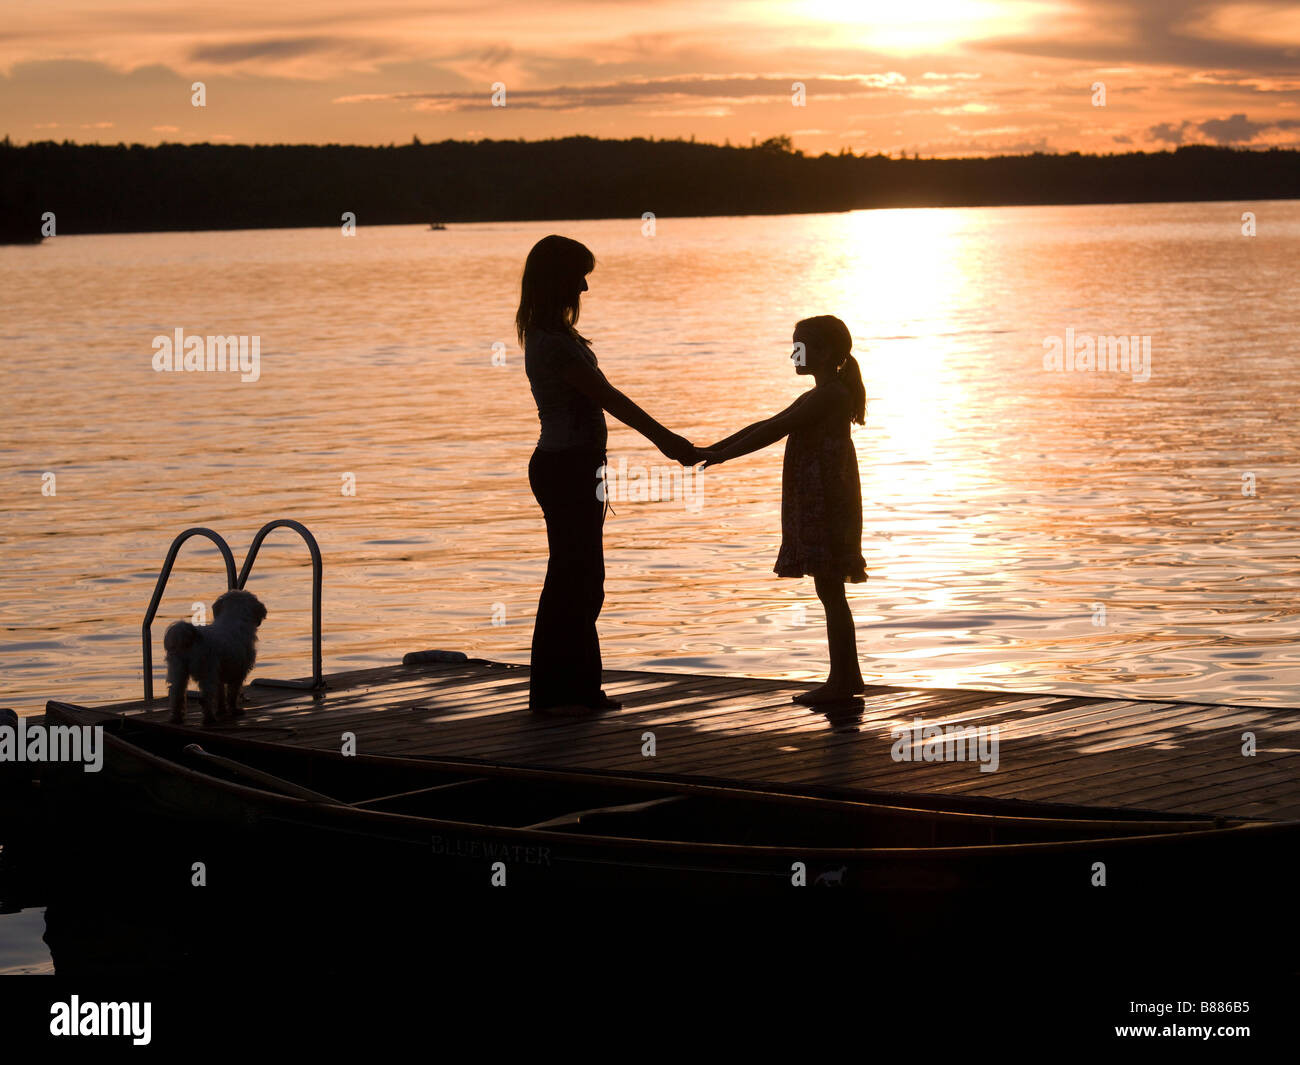 Silhouette of mother and daughter on a dock, Lake of the Woods, Ontario, Canada - Stock Image